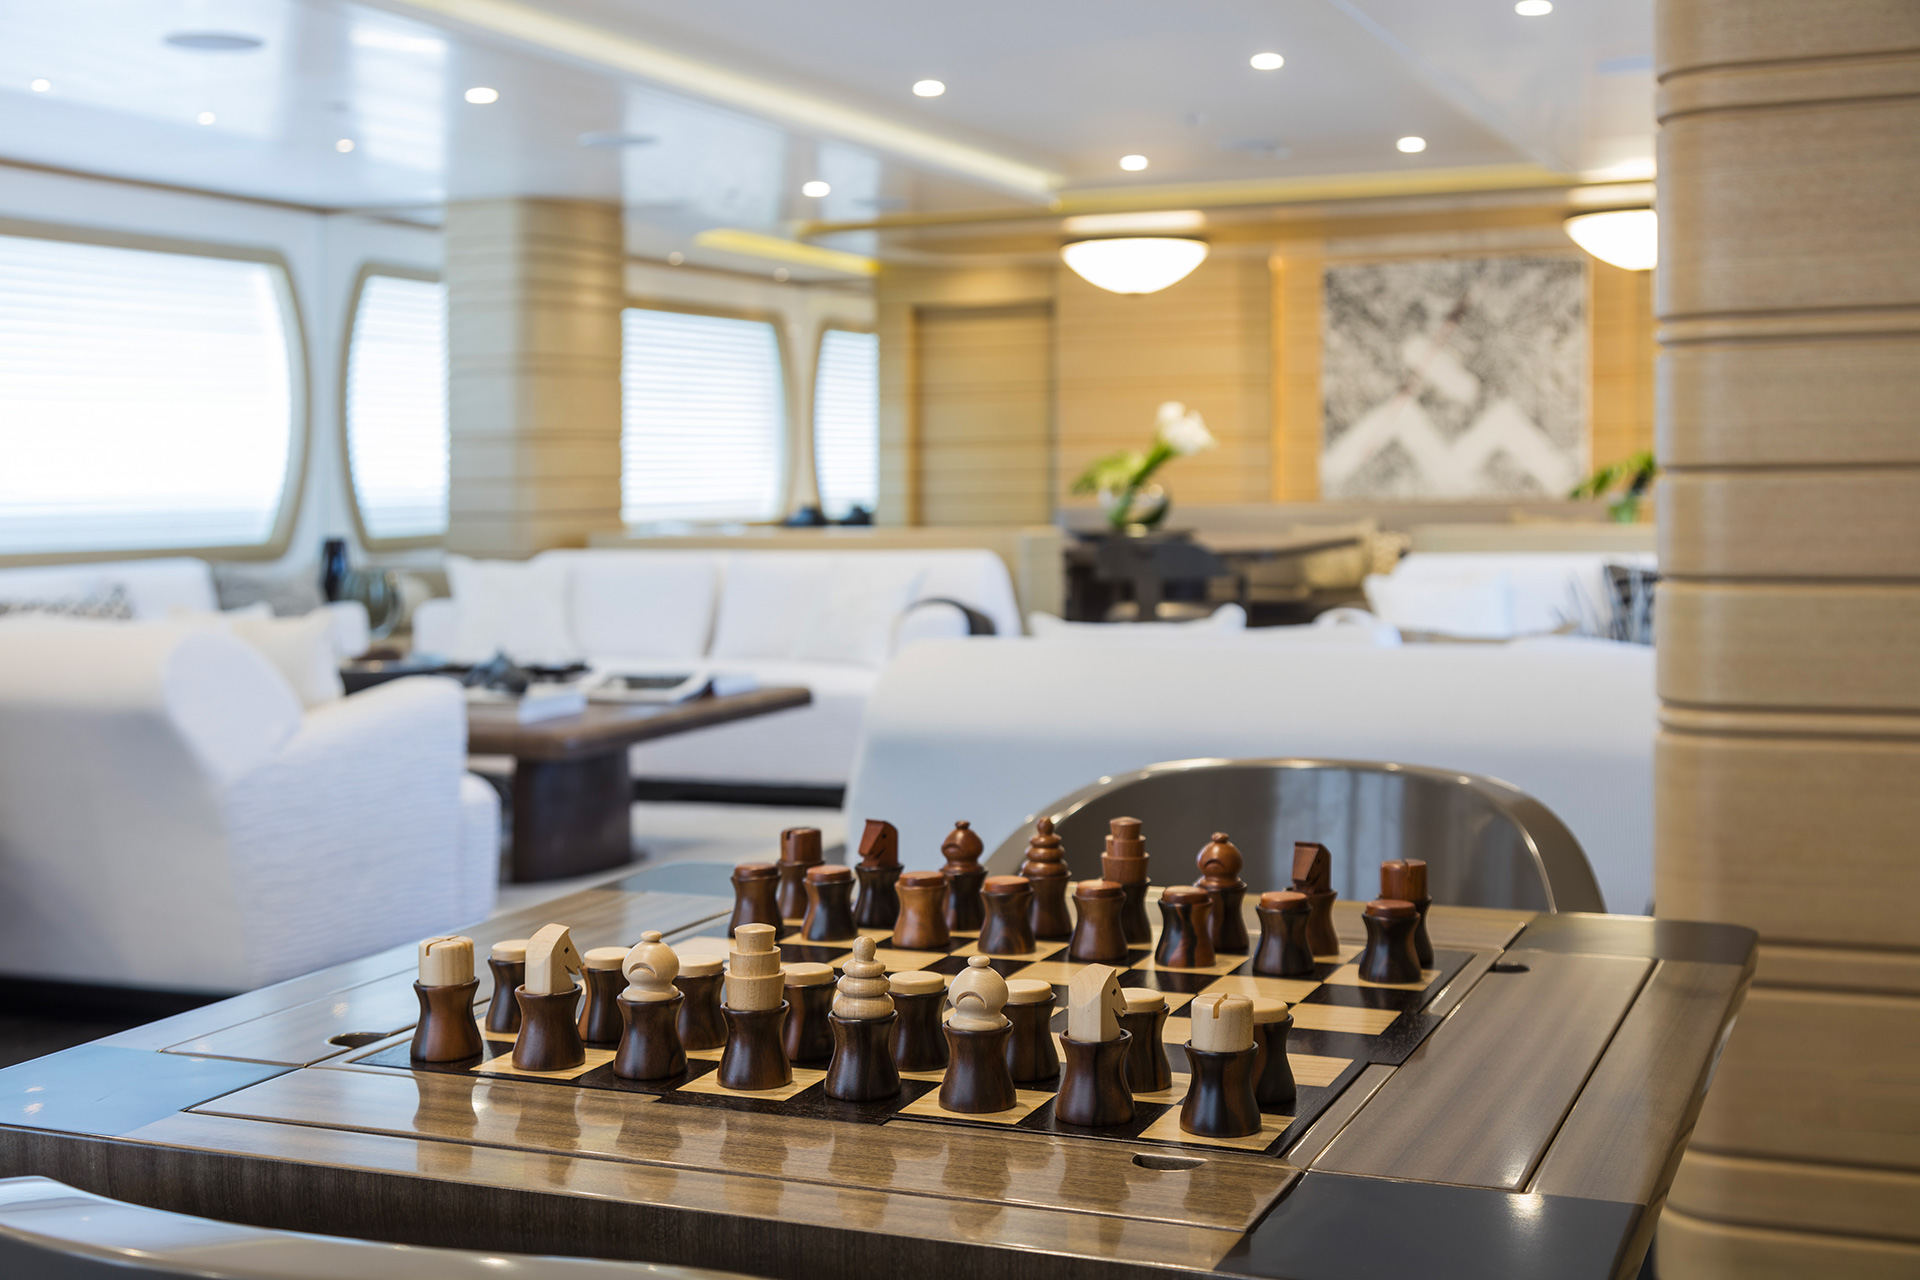 Board games in a Yacht designed by FM Architettura and furnished with Promemoria | Promemoria